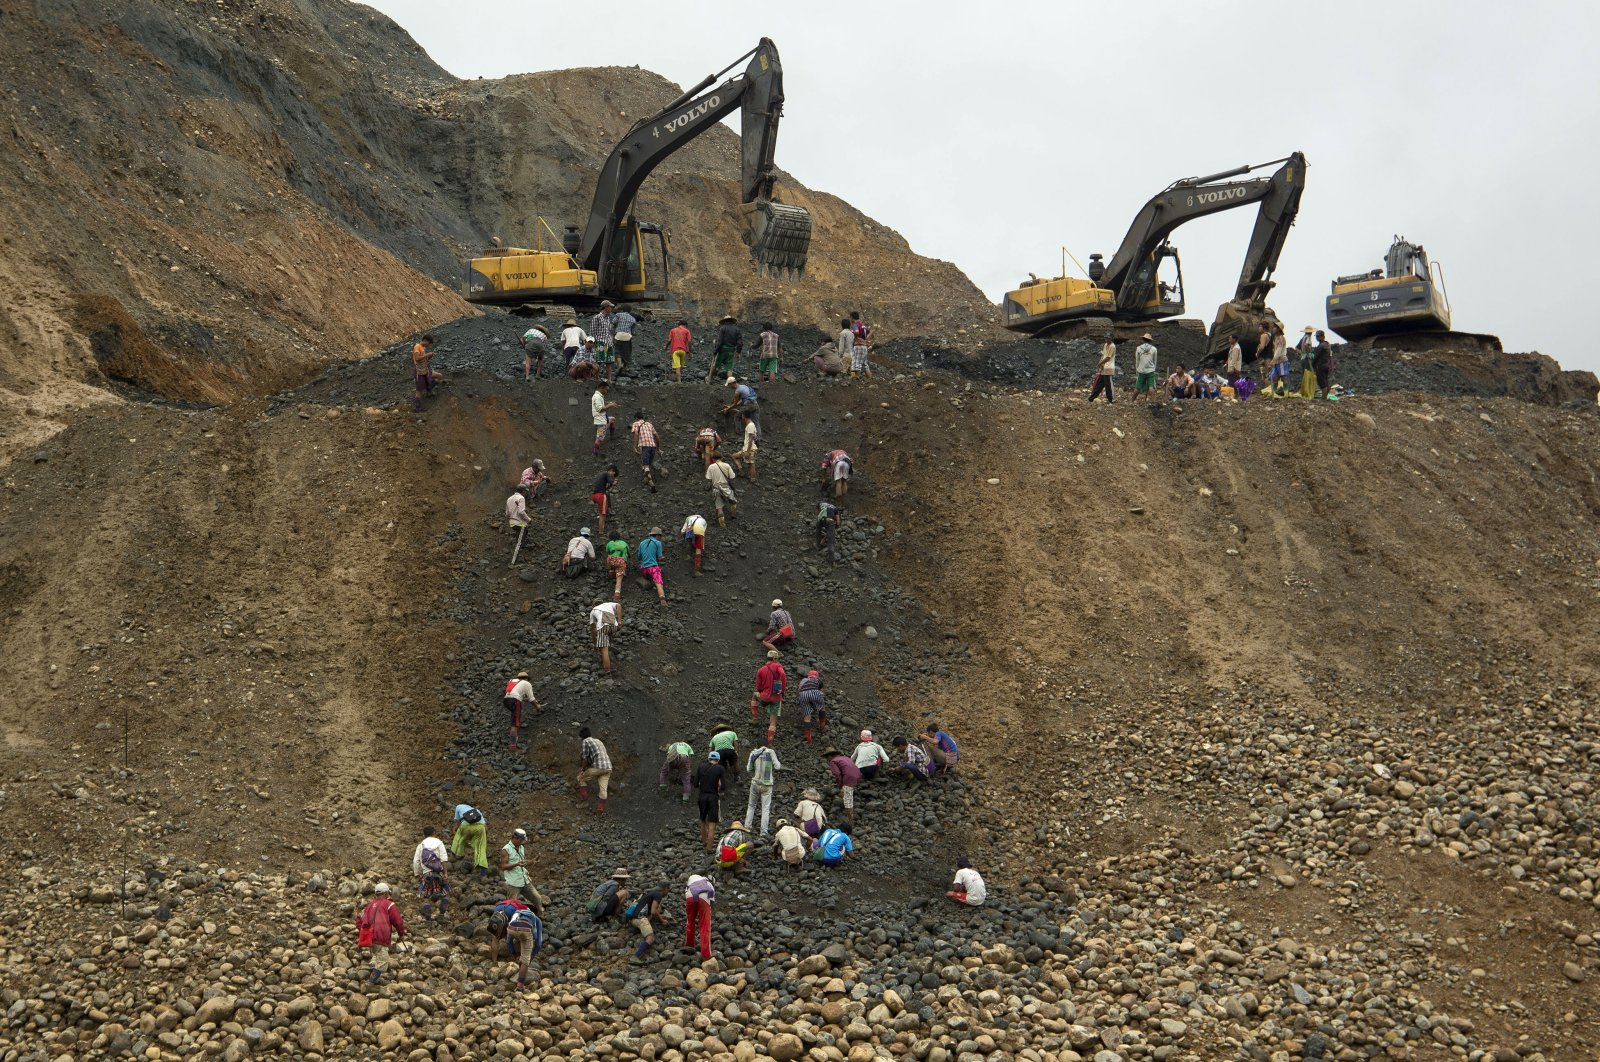 Freelance jade miners collect jade stones in the Hpakant area, Kachin State, Myanmar, June 15, 2015. (AP Photo)